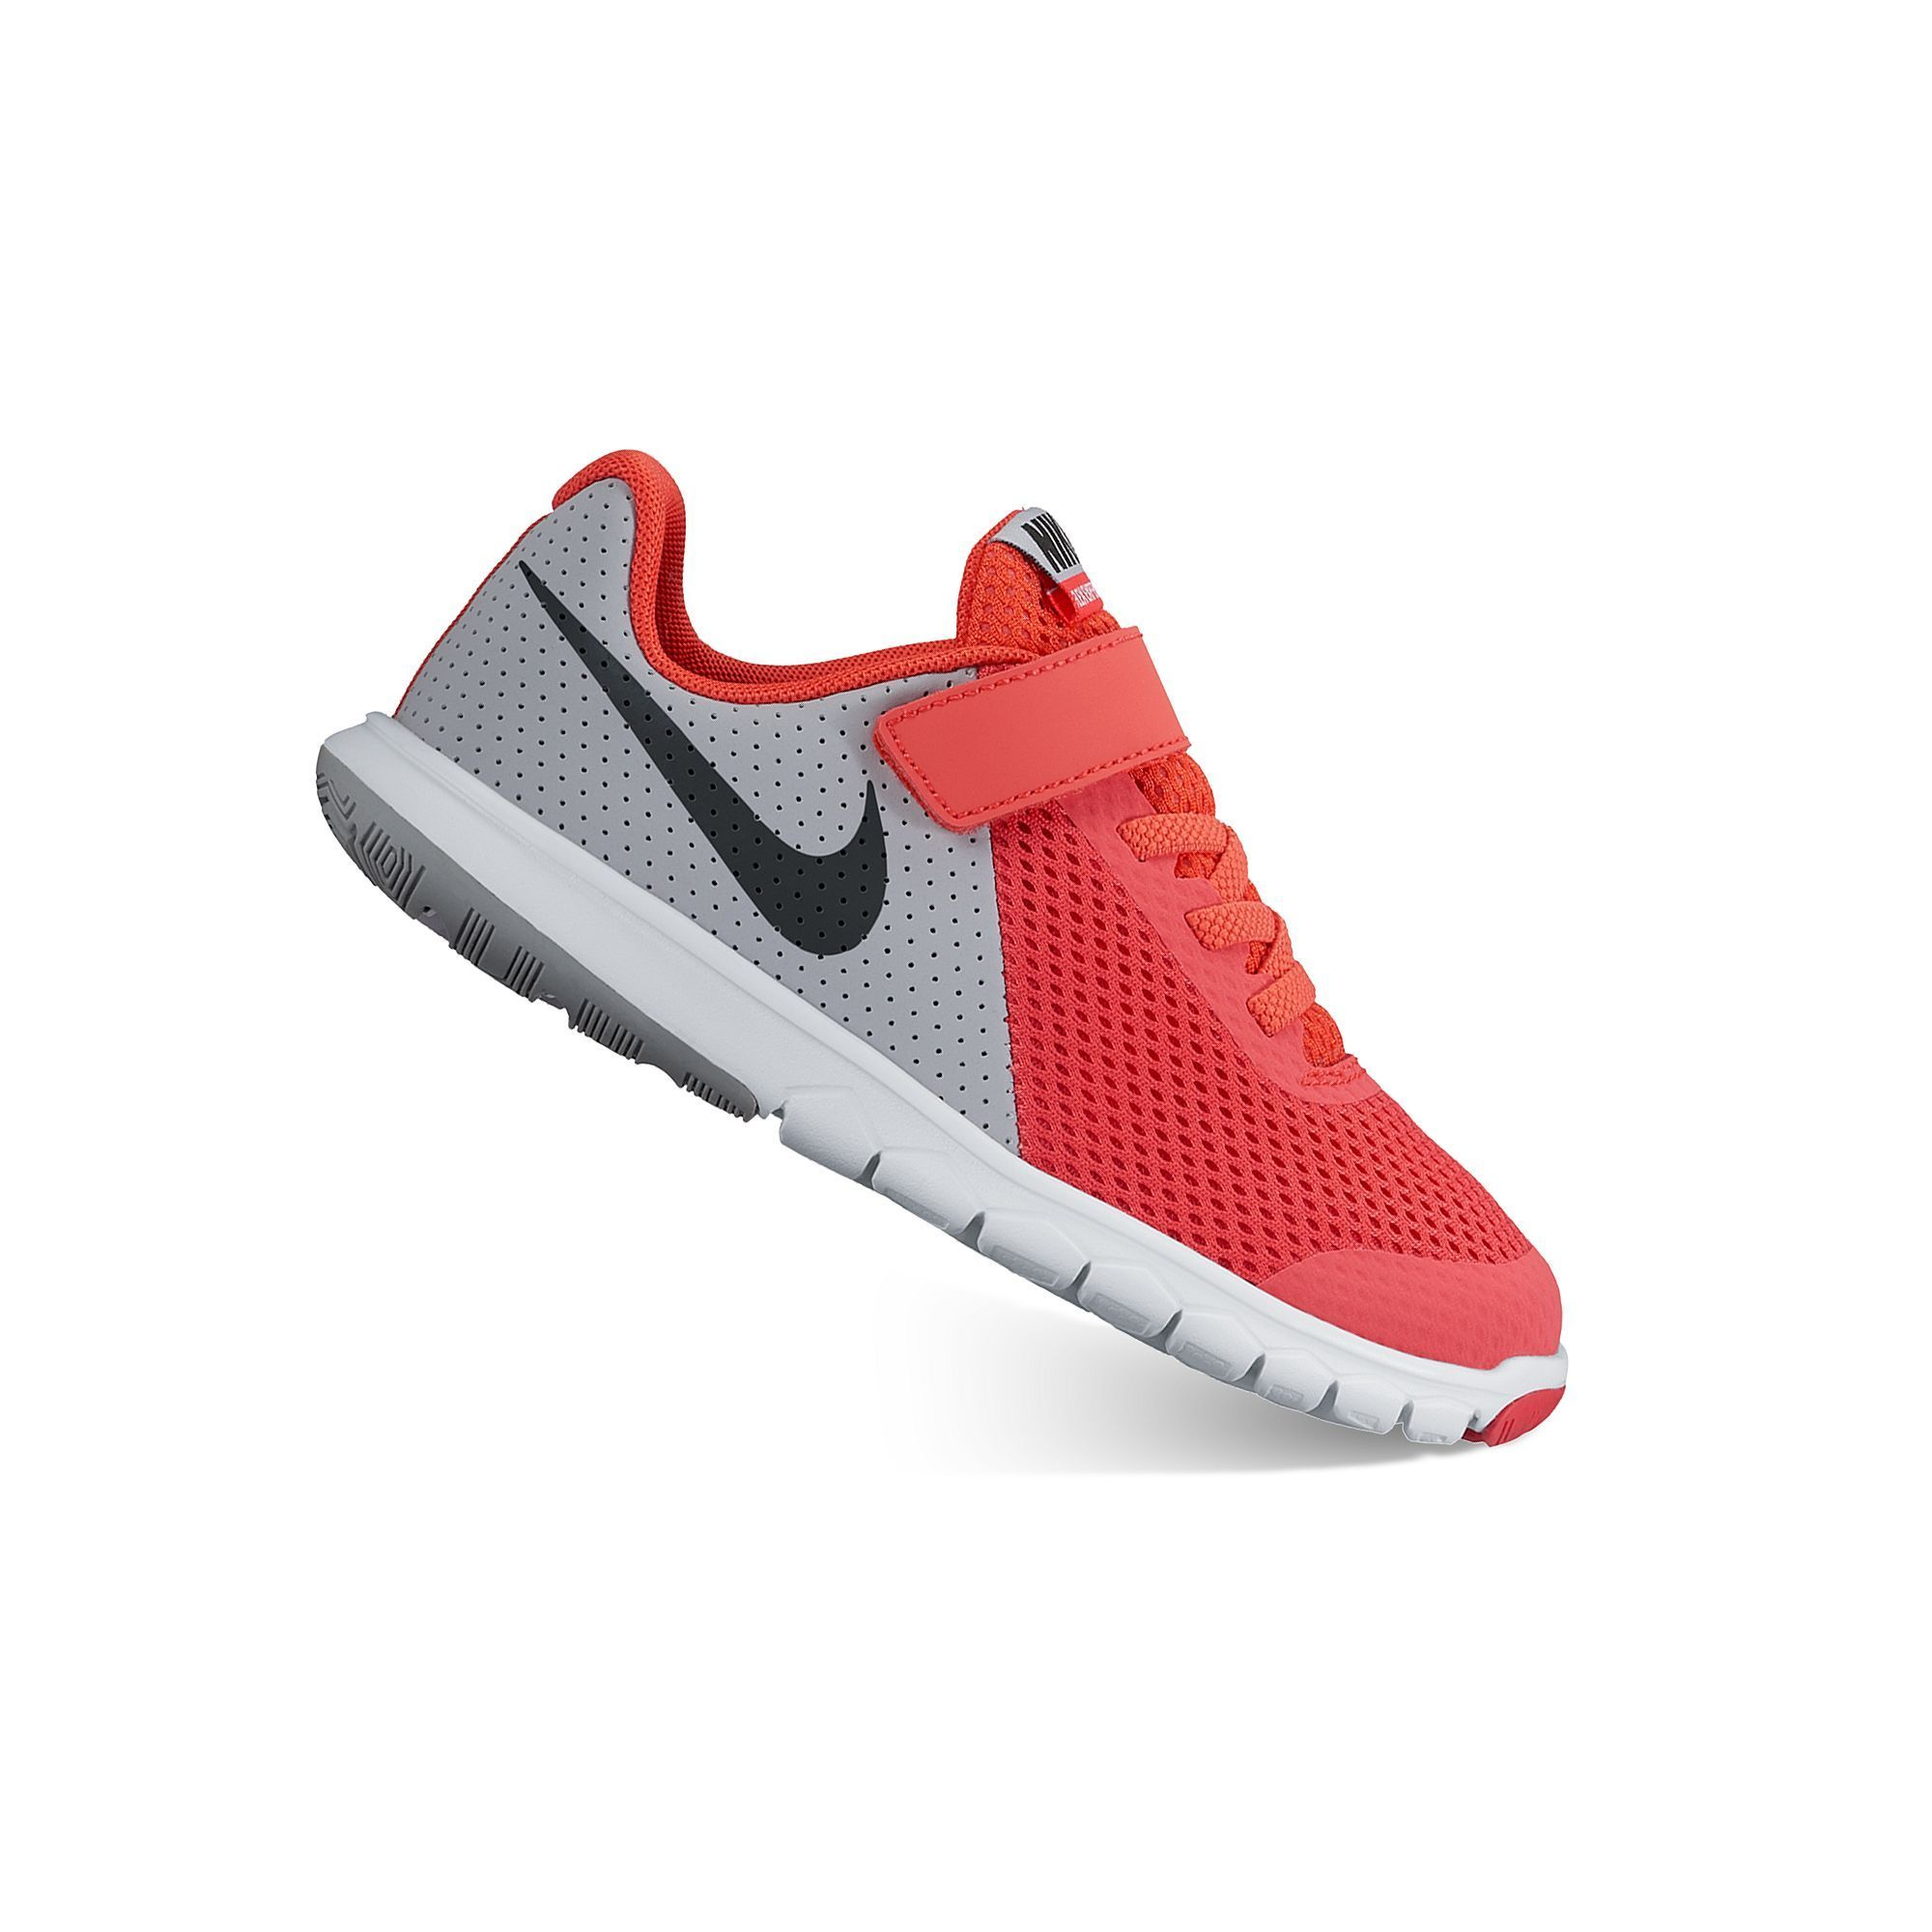 NIKE Flex Experience 5 GS Running Shoes Black Boys Kids Youth 844995-010 $65